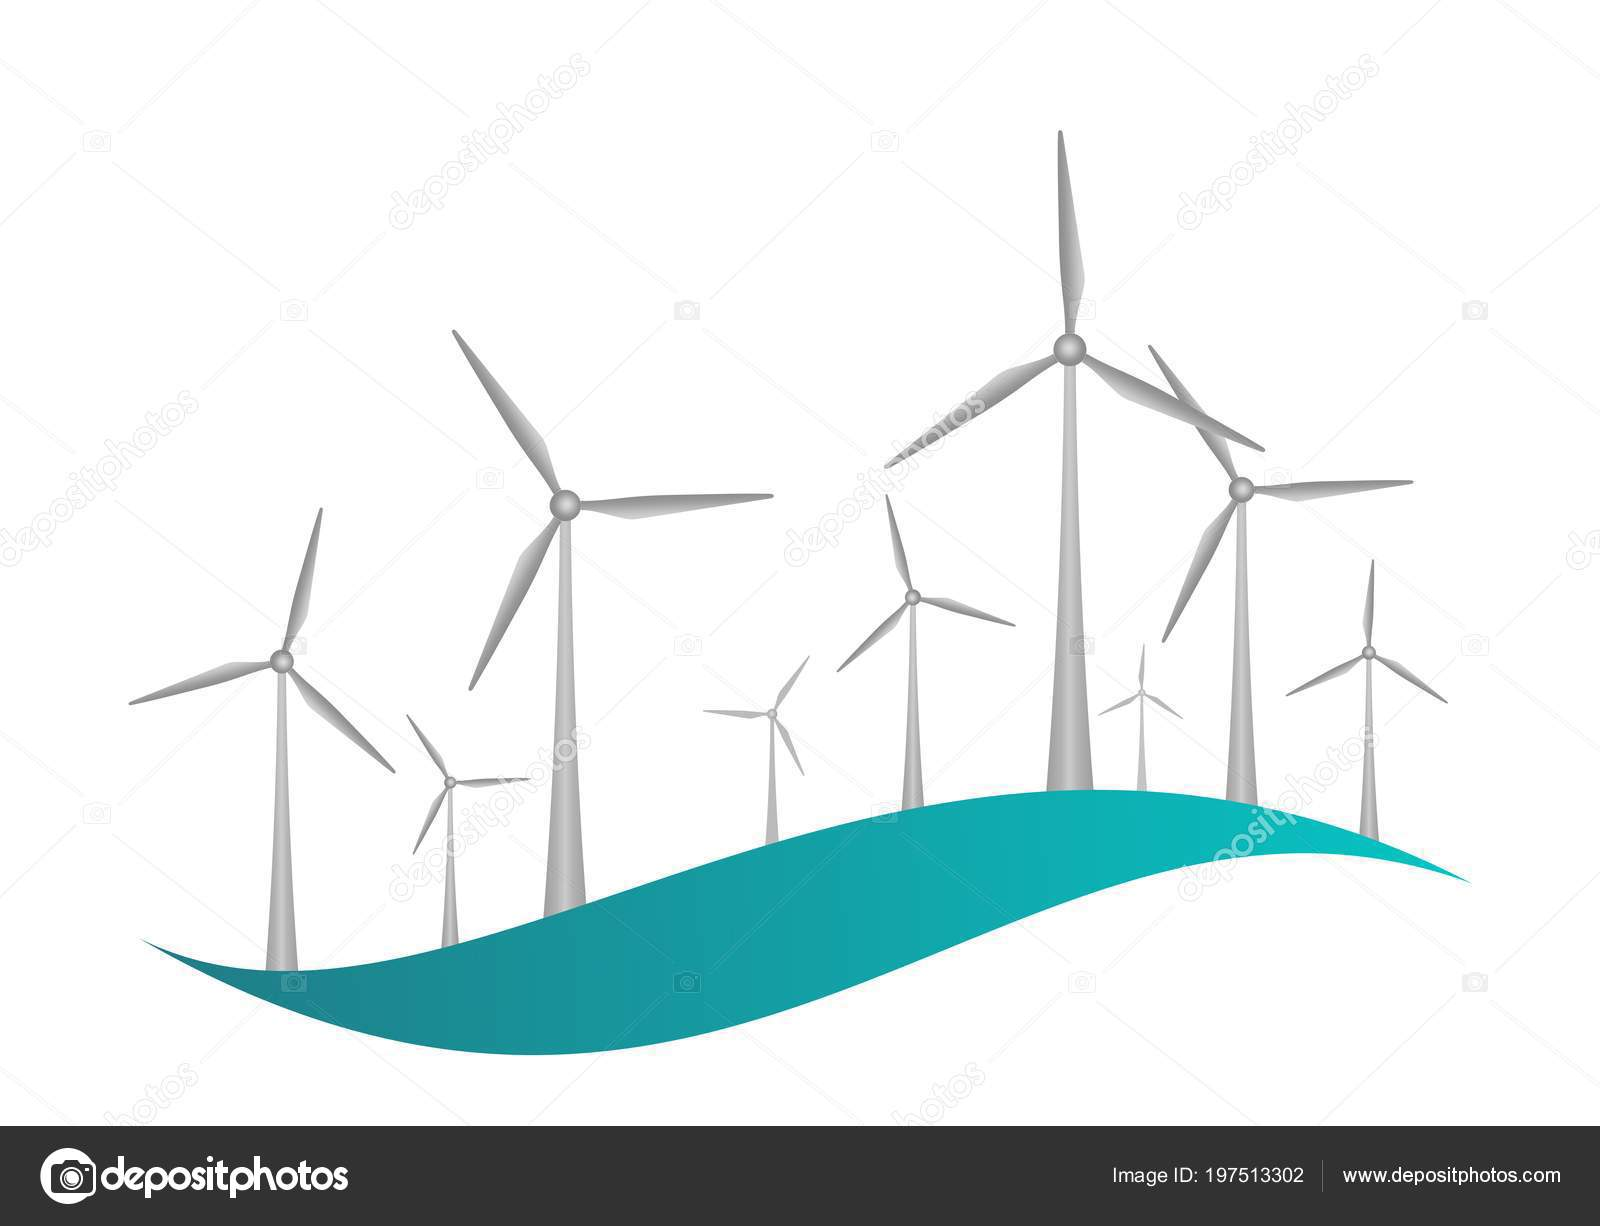 hight resolution of gray wind turbines engine propellers blue wave white background icon stock vector